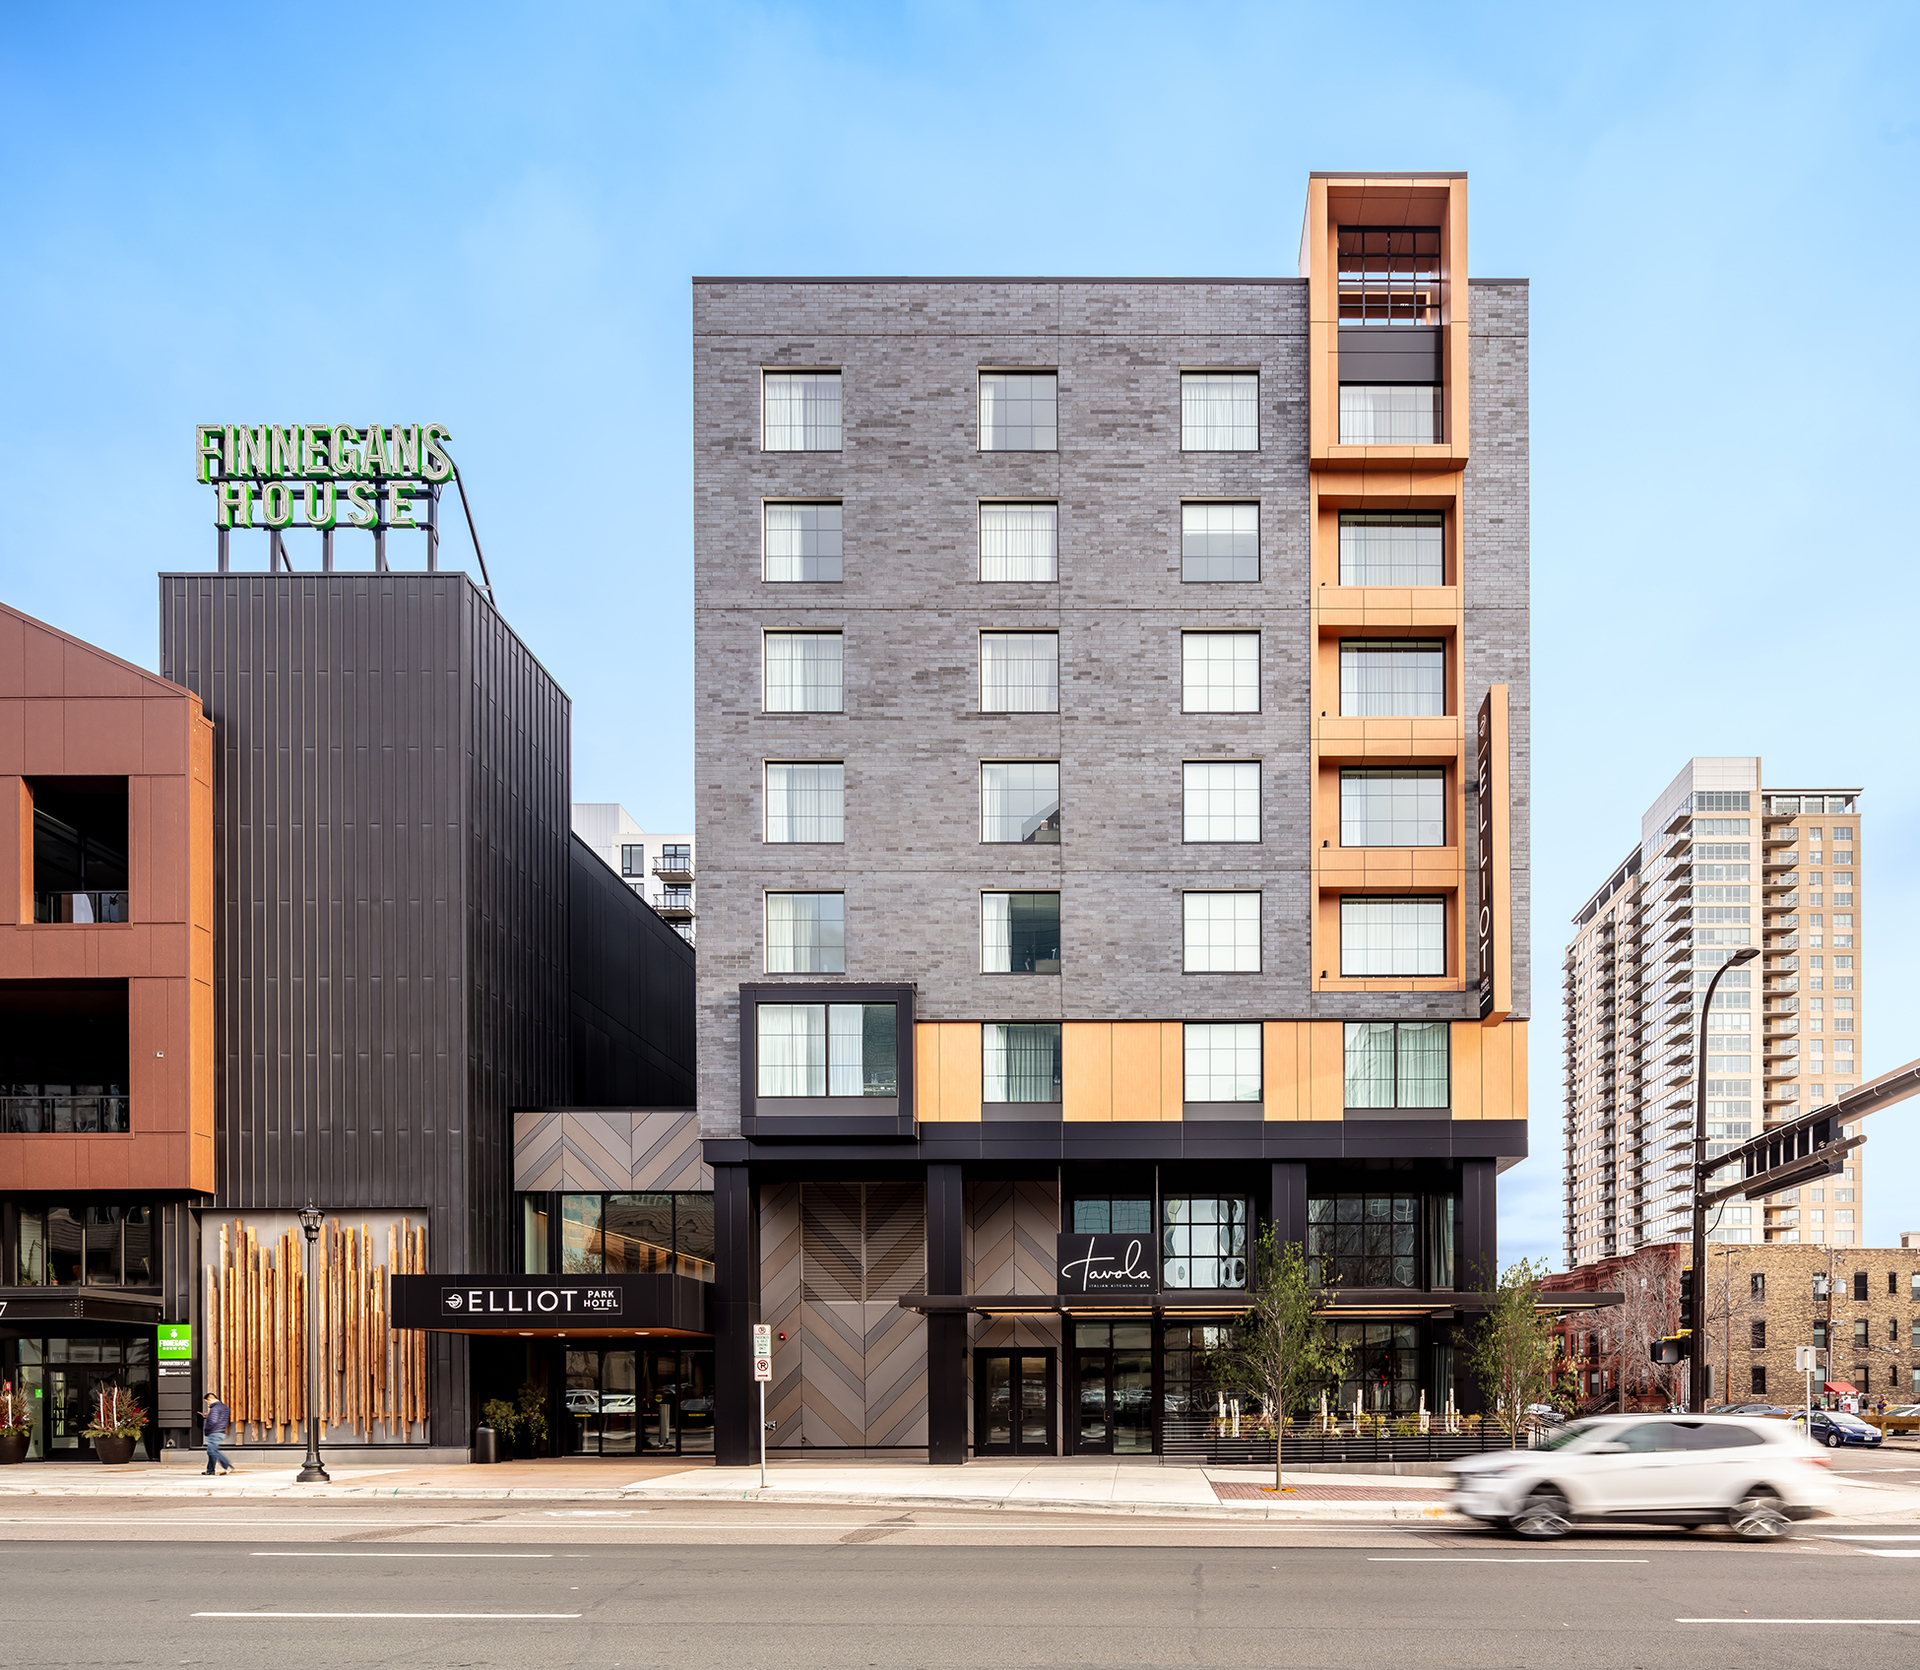 Directly adjacent to HQ Apartments and Finnegan's Brewery on the Kraus-Anderson Block is the Elliot Park Hotel in Minneapolis, Minnesota.